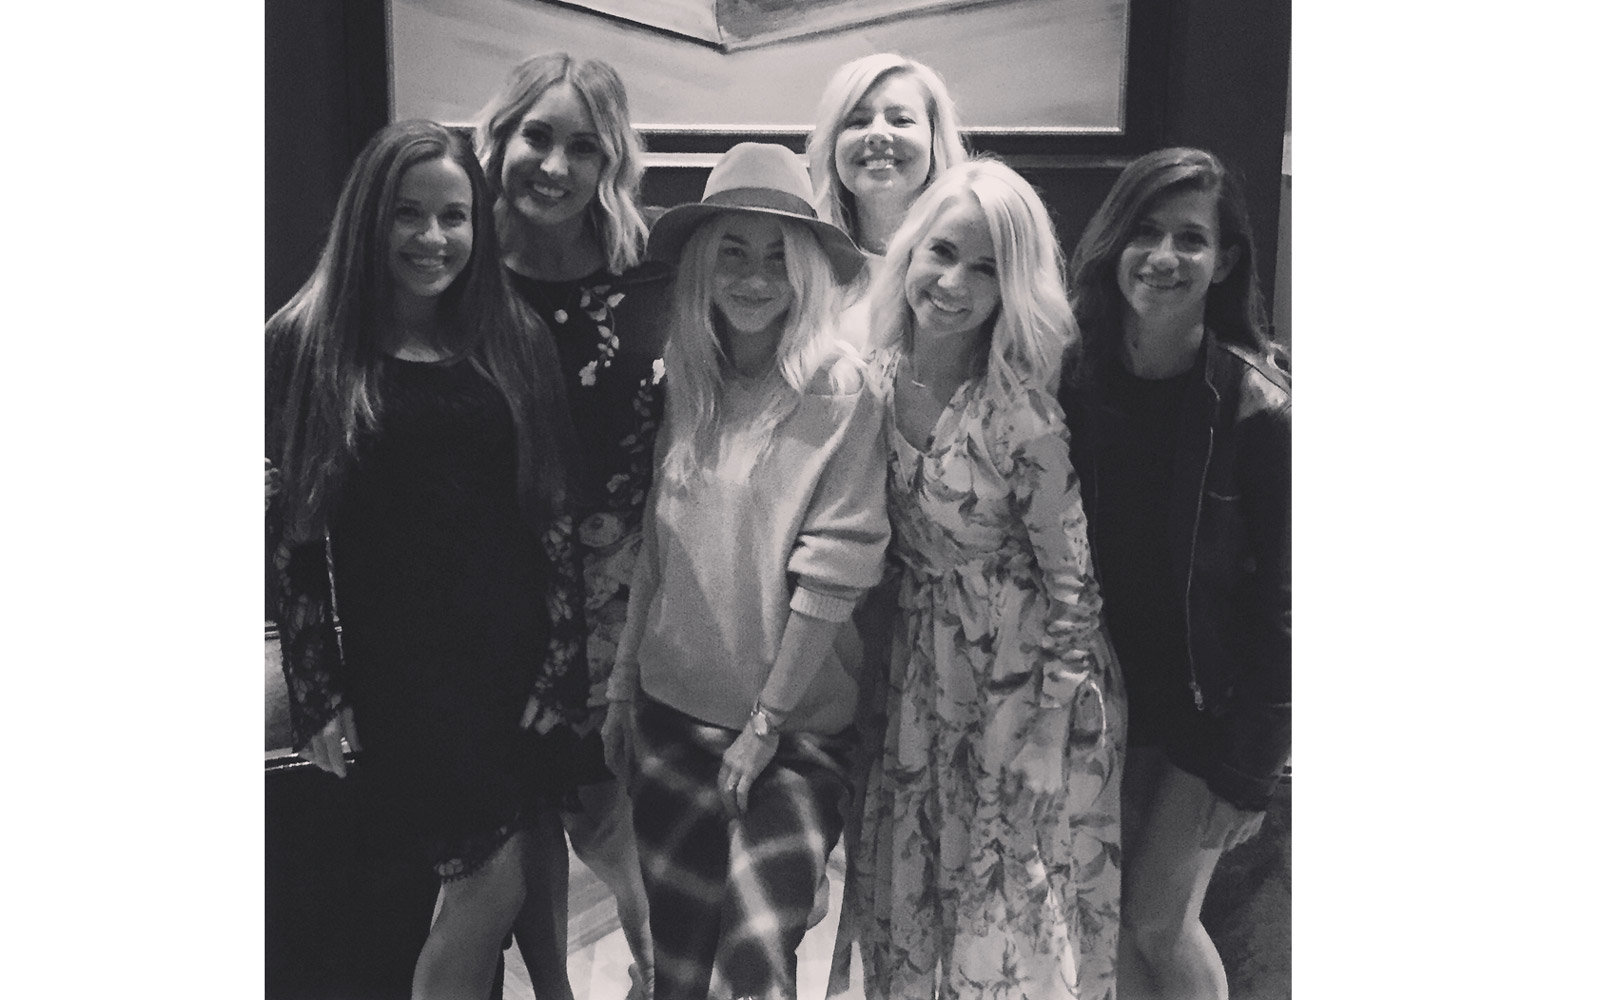 Julianne Hough with her friends -- B&W photo